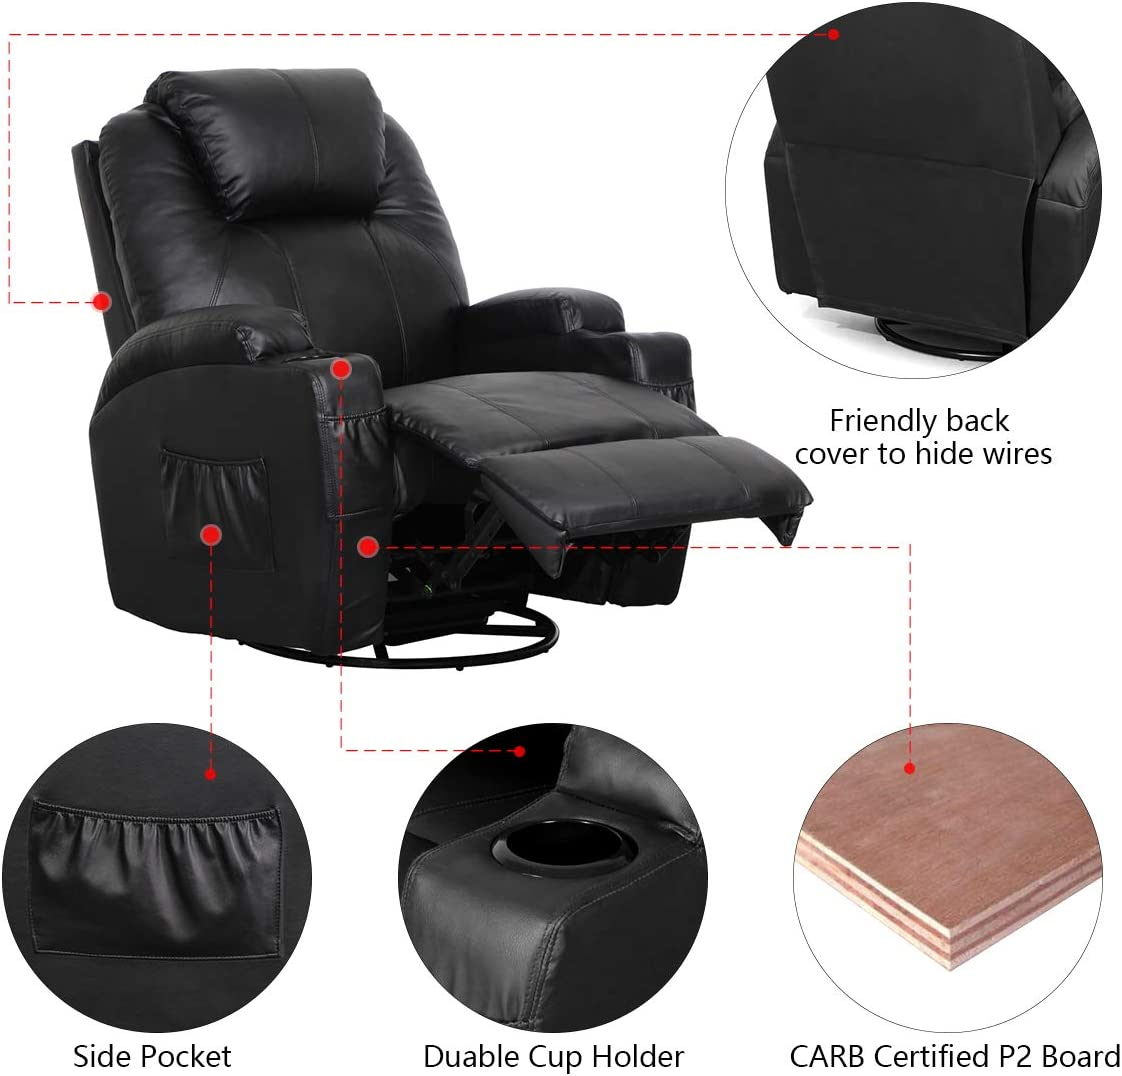 Esright Recliner Lounge Chair leather material and design